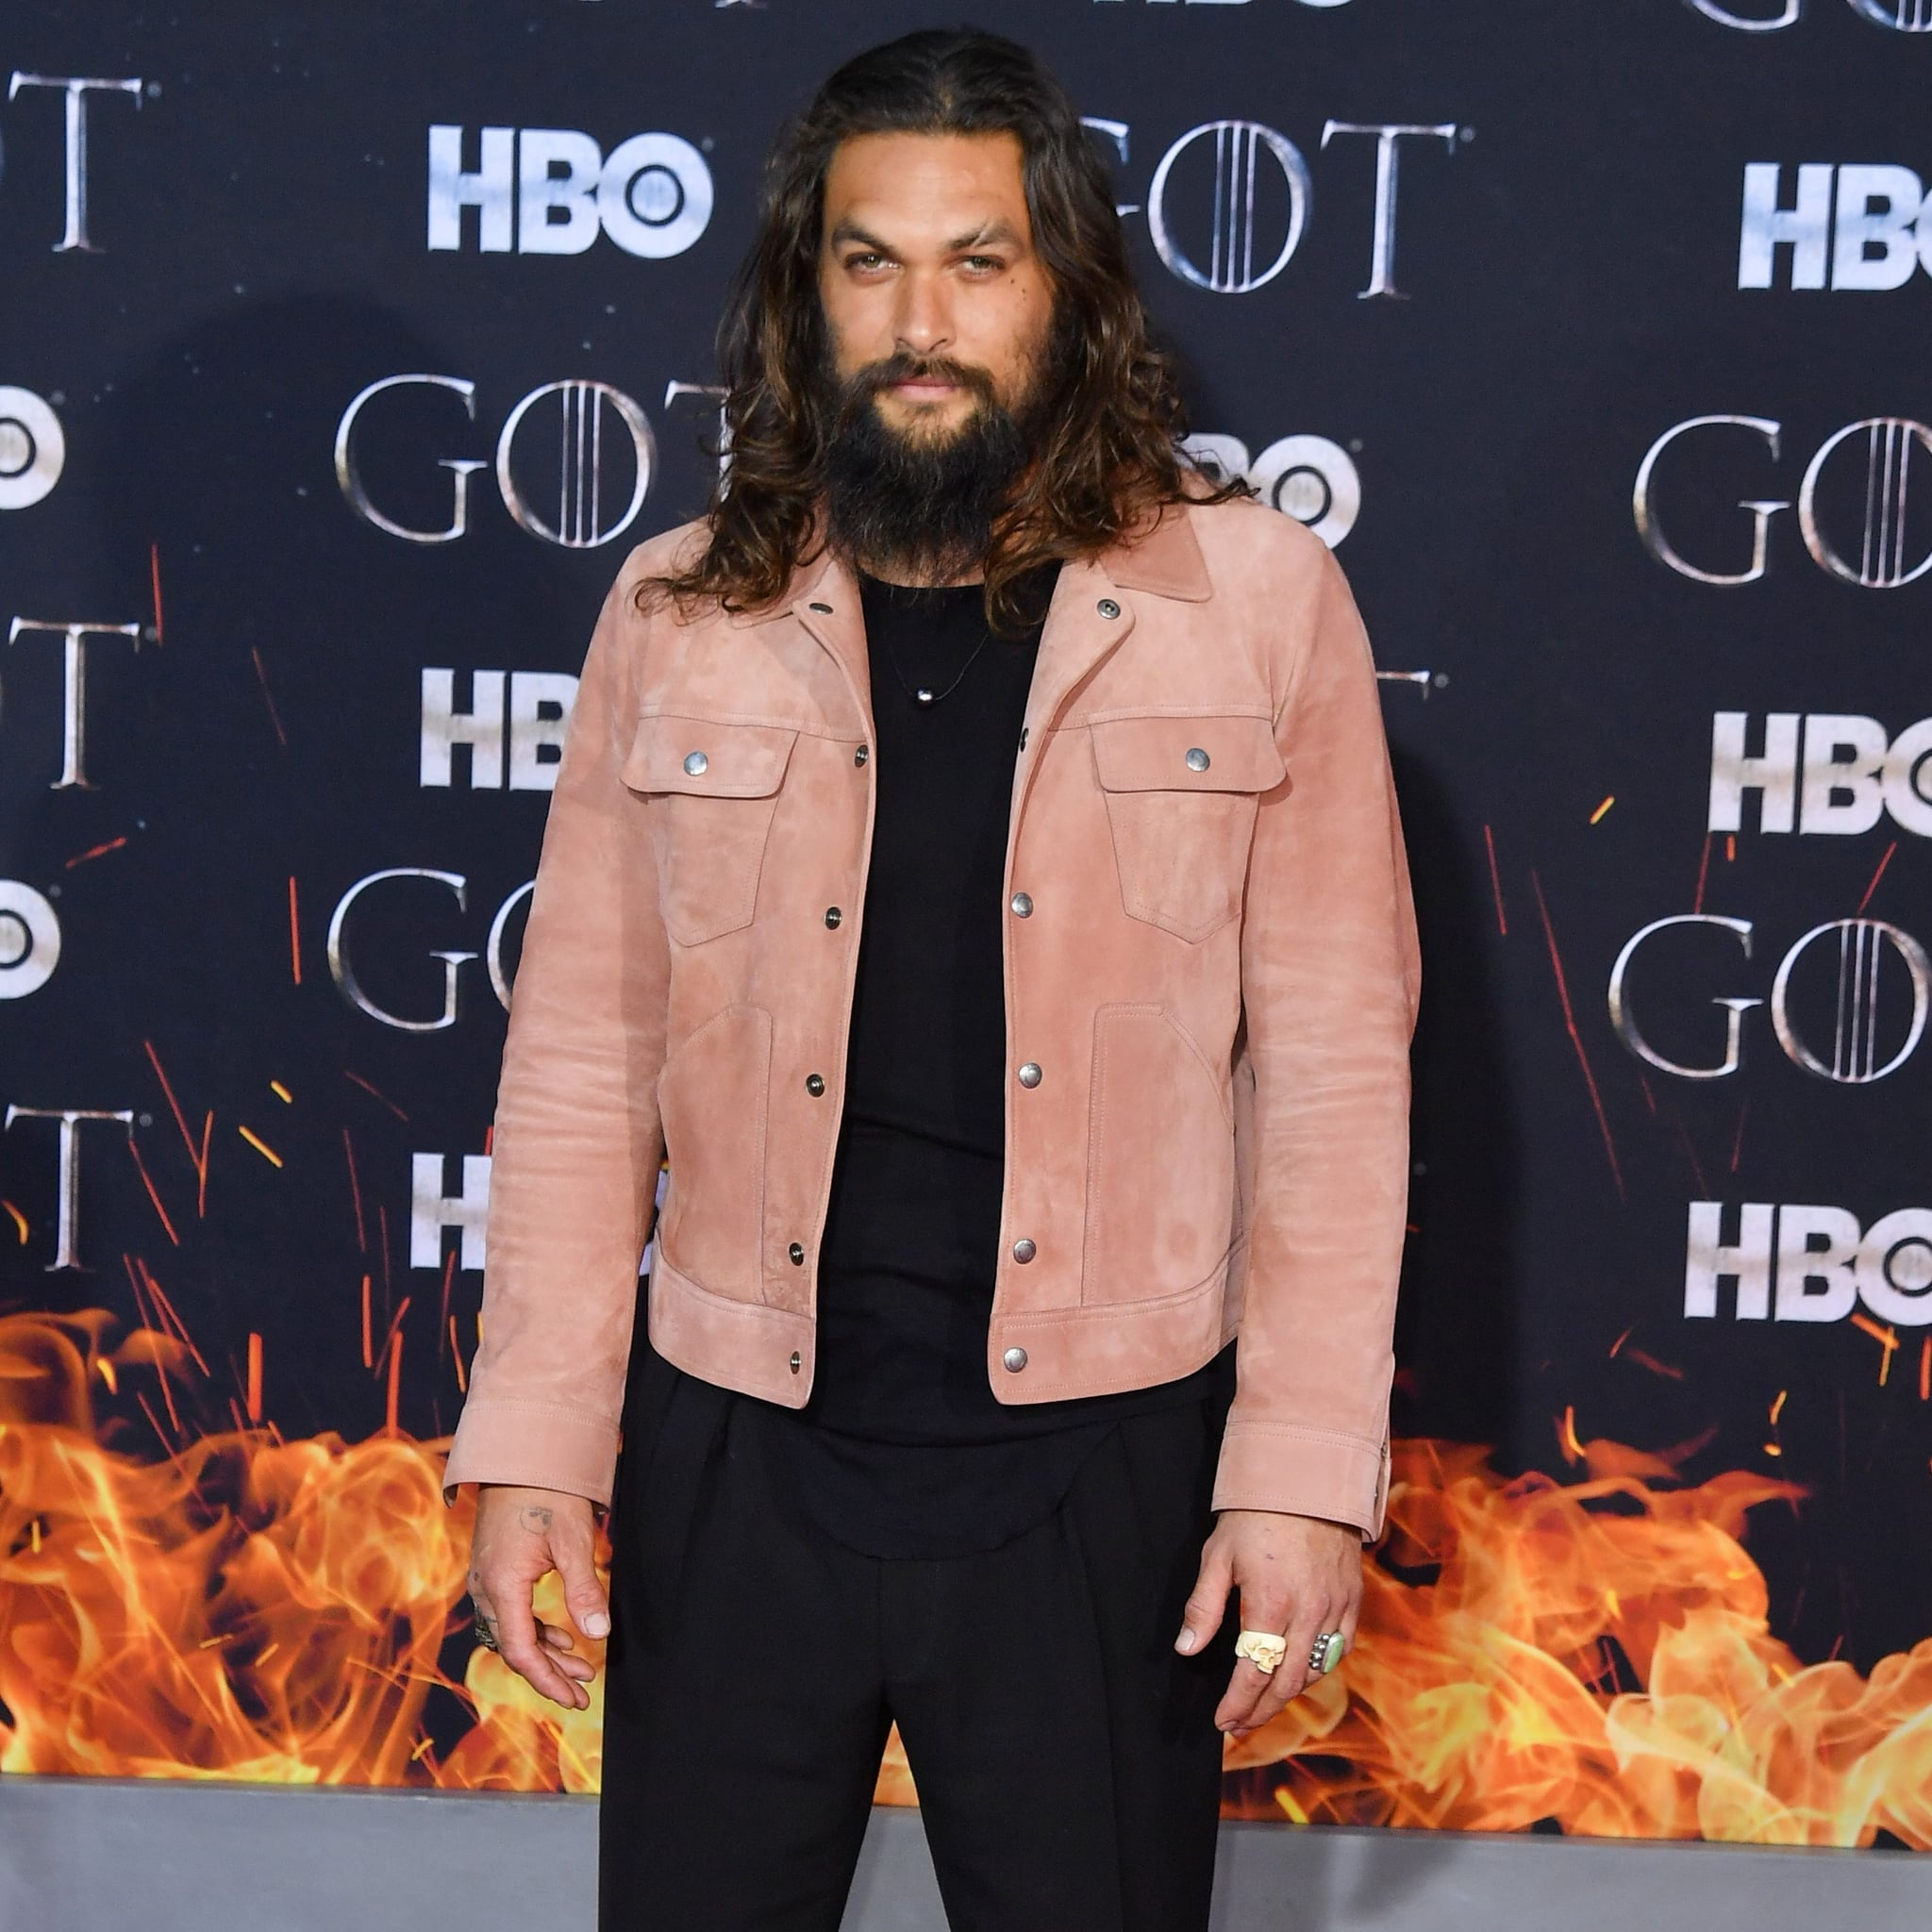 Flipboard: Jason Momoa Has Nothing Nice To Say To Jon Snow